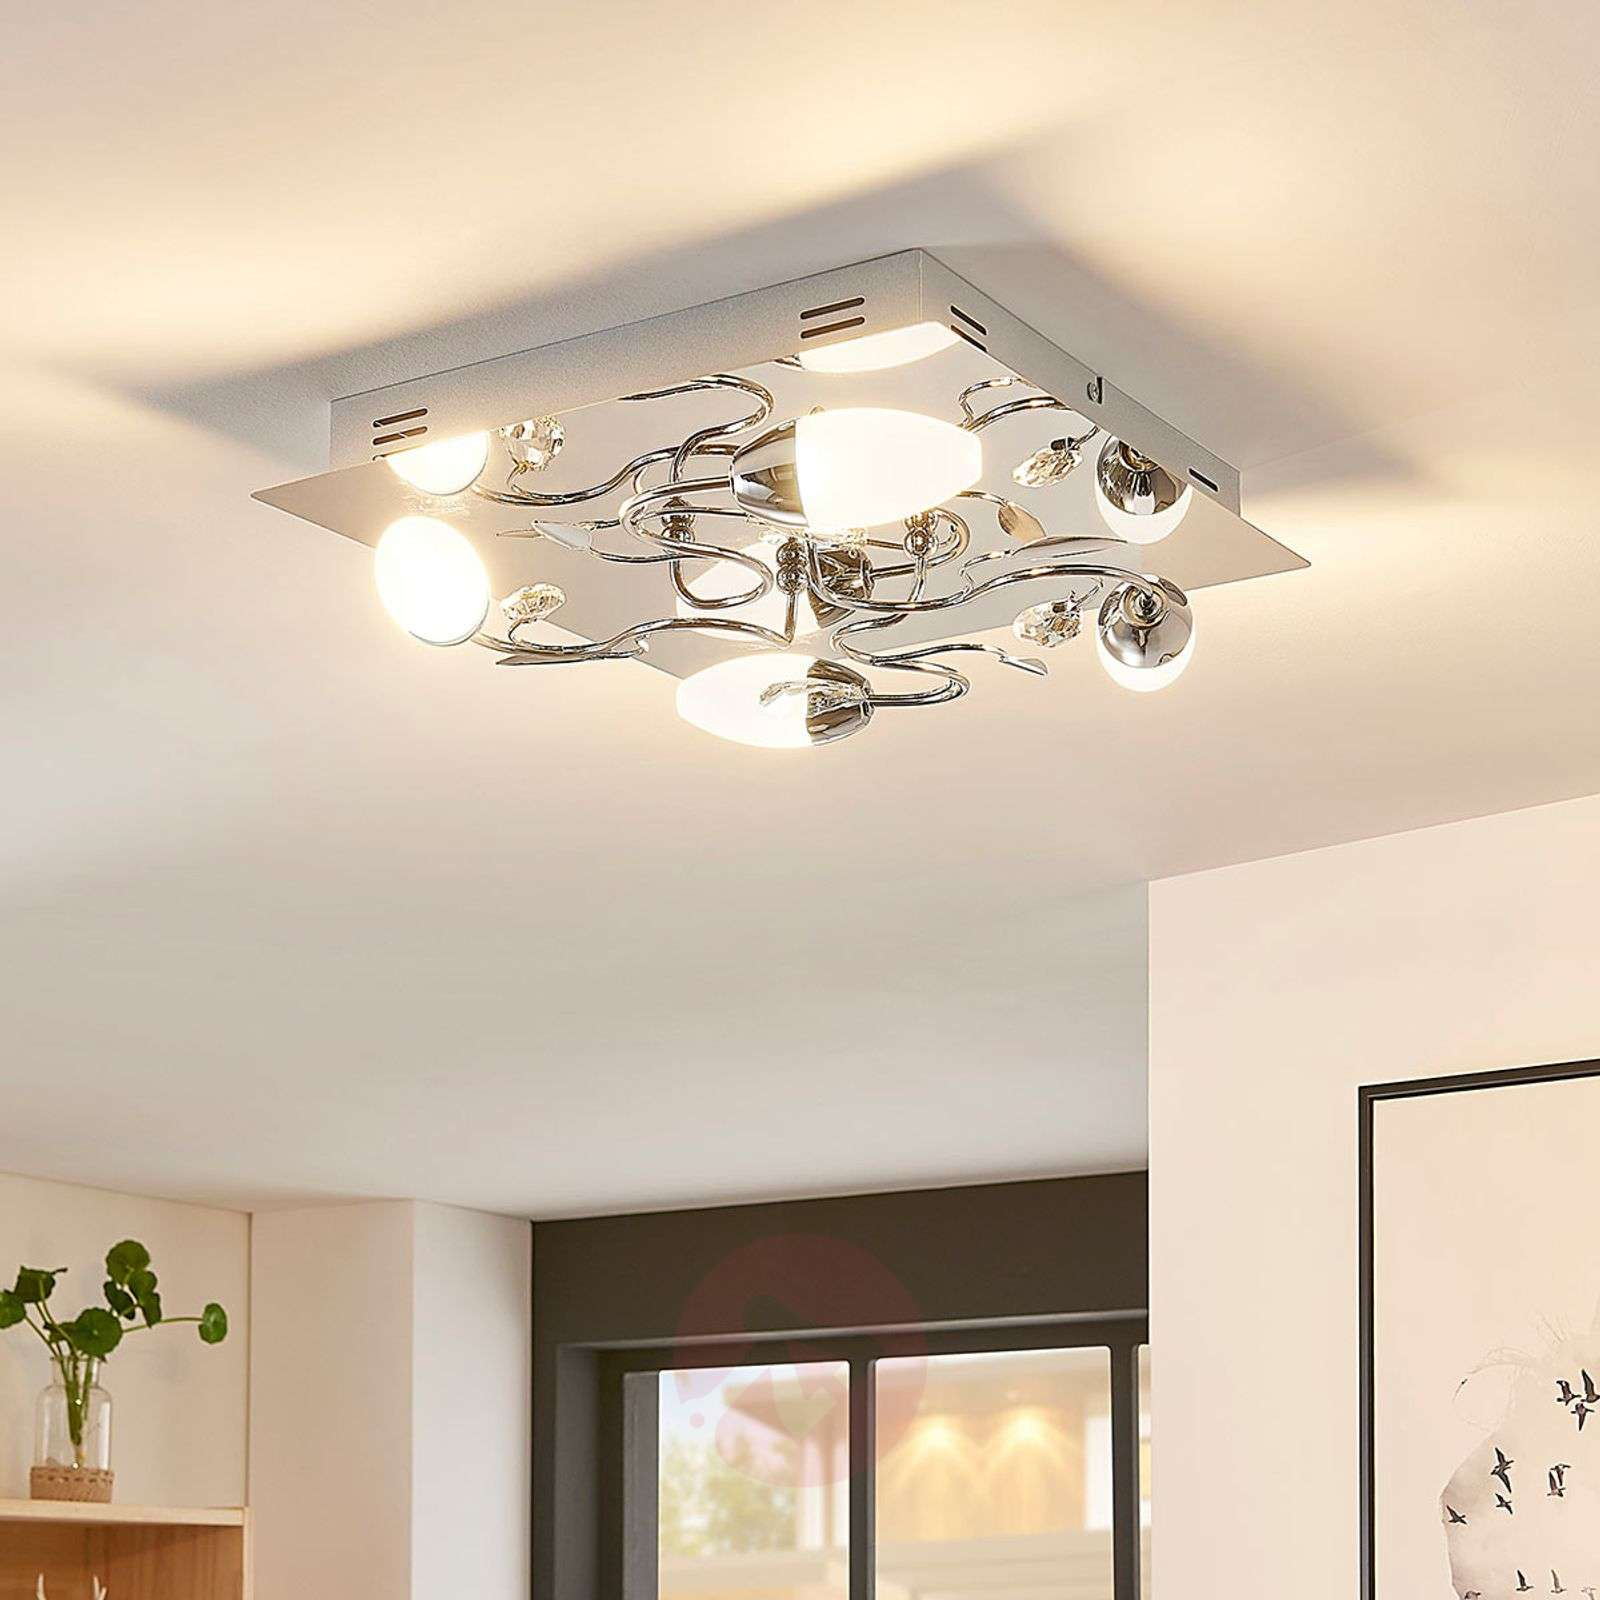 Plafonnier Lampes Led Mischa Dimmable Carré4 OilkXPZwuT